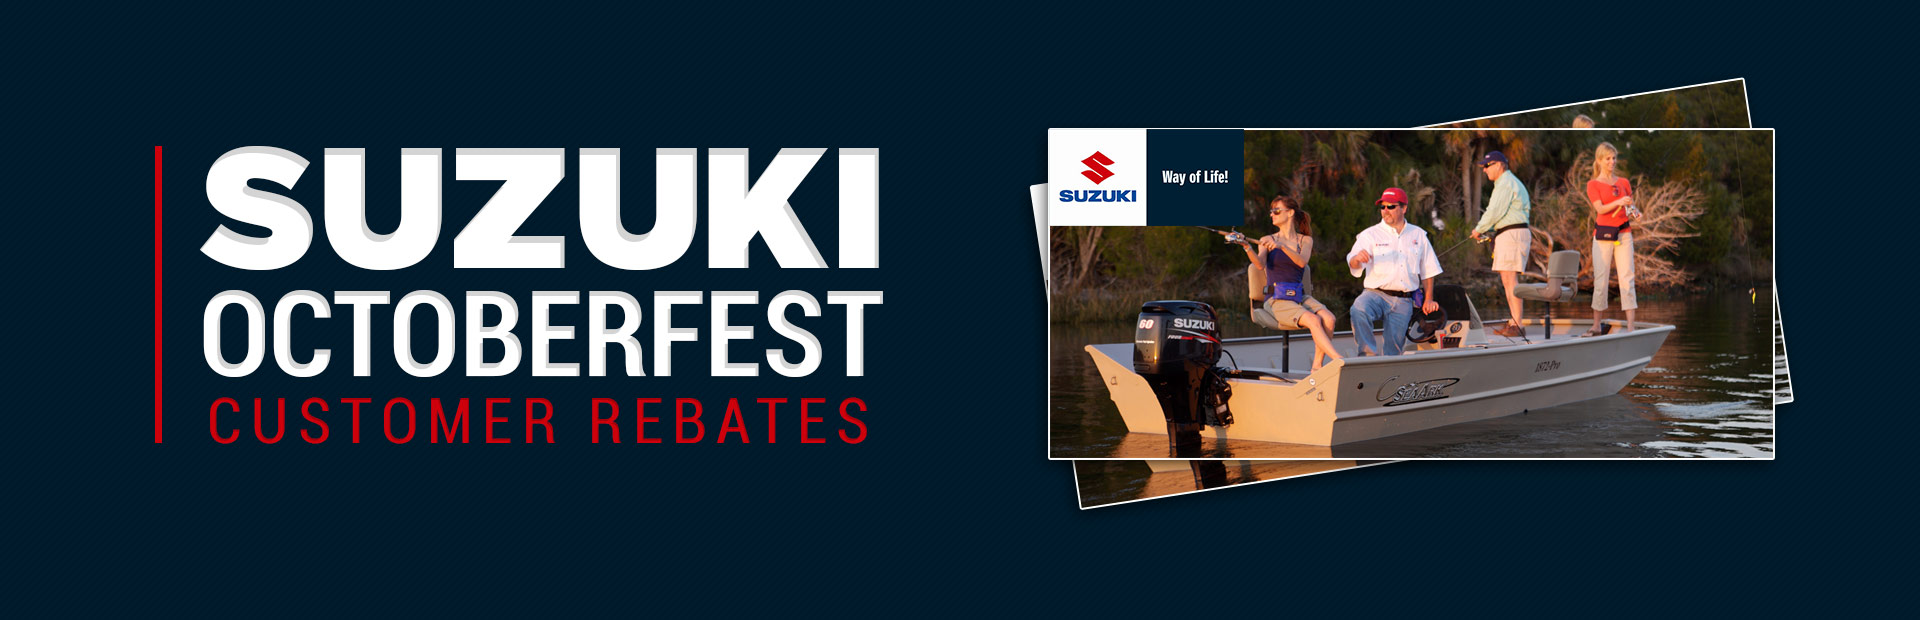 Suzuki: Suzuki Octoberfest Customer Rebates